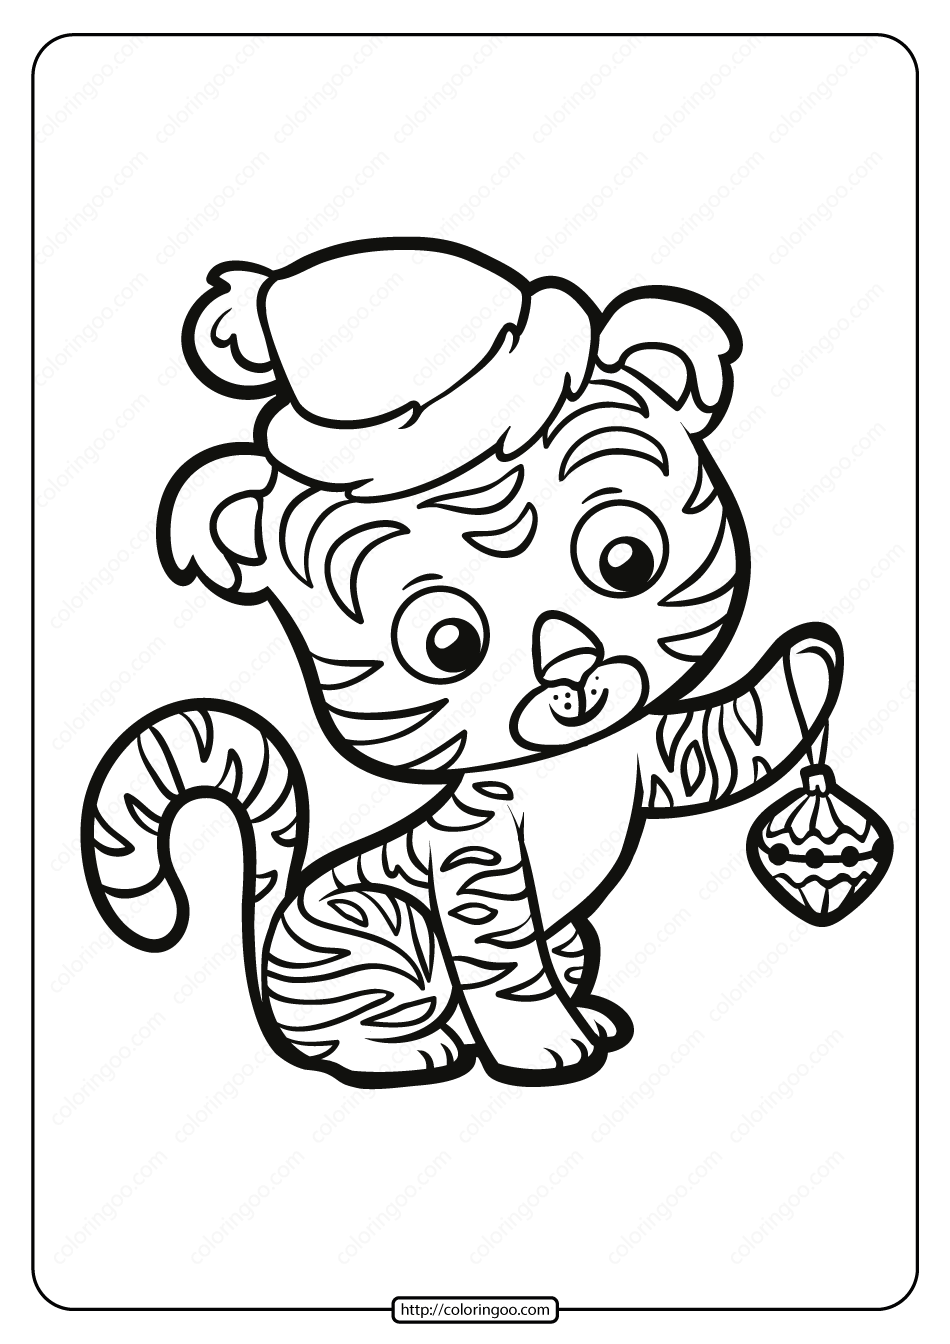 42+ Coloring pages for kids pdf ideas